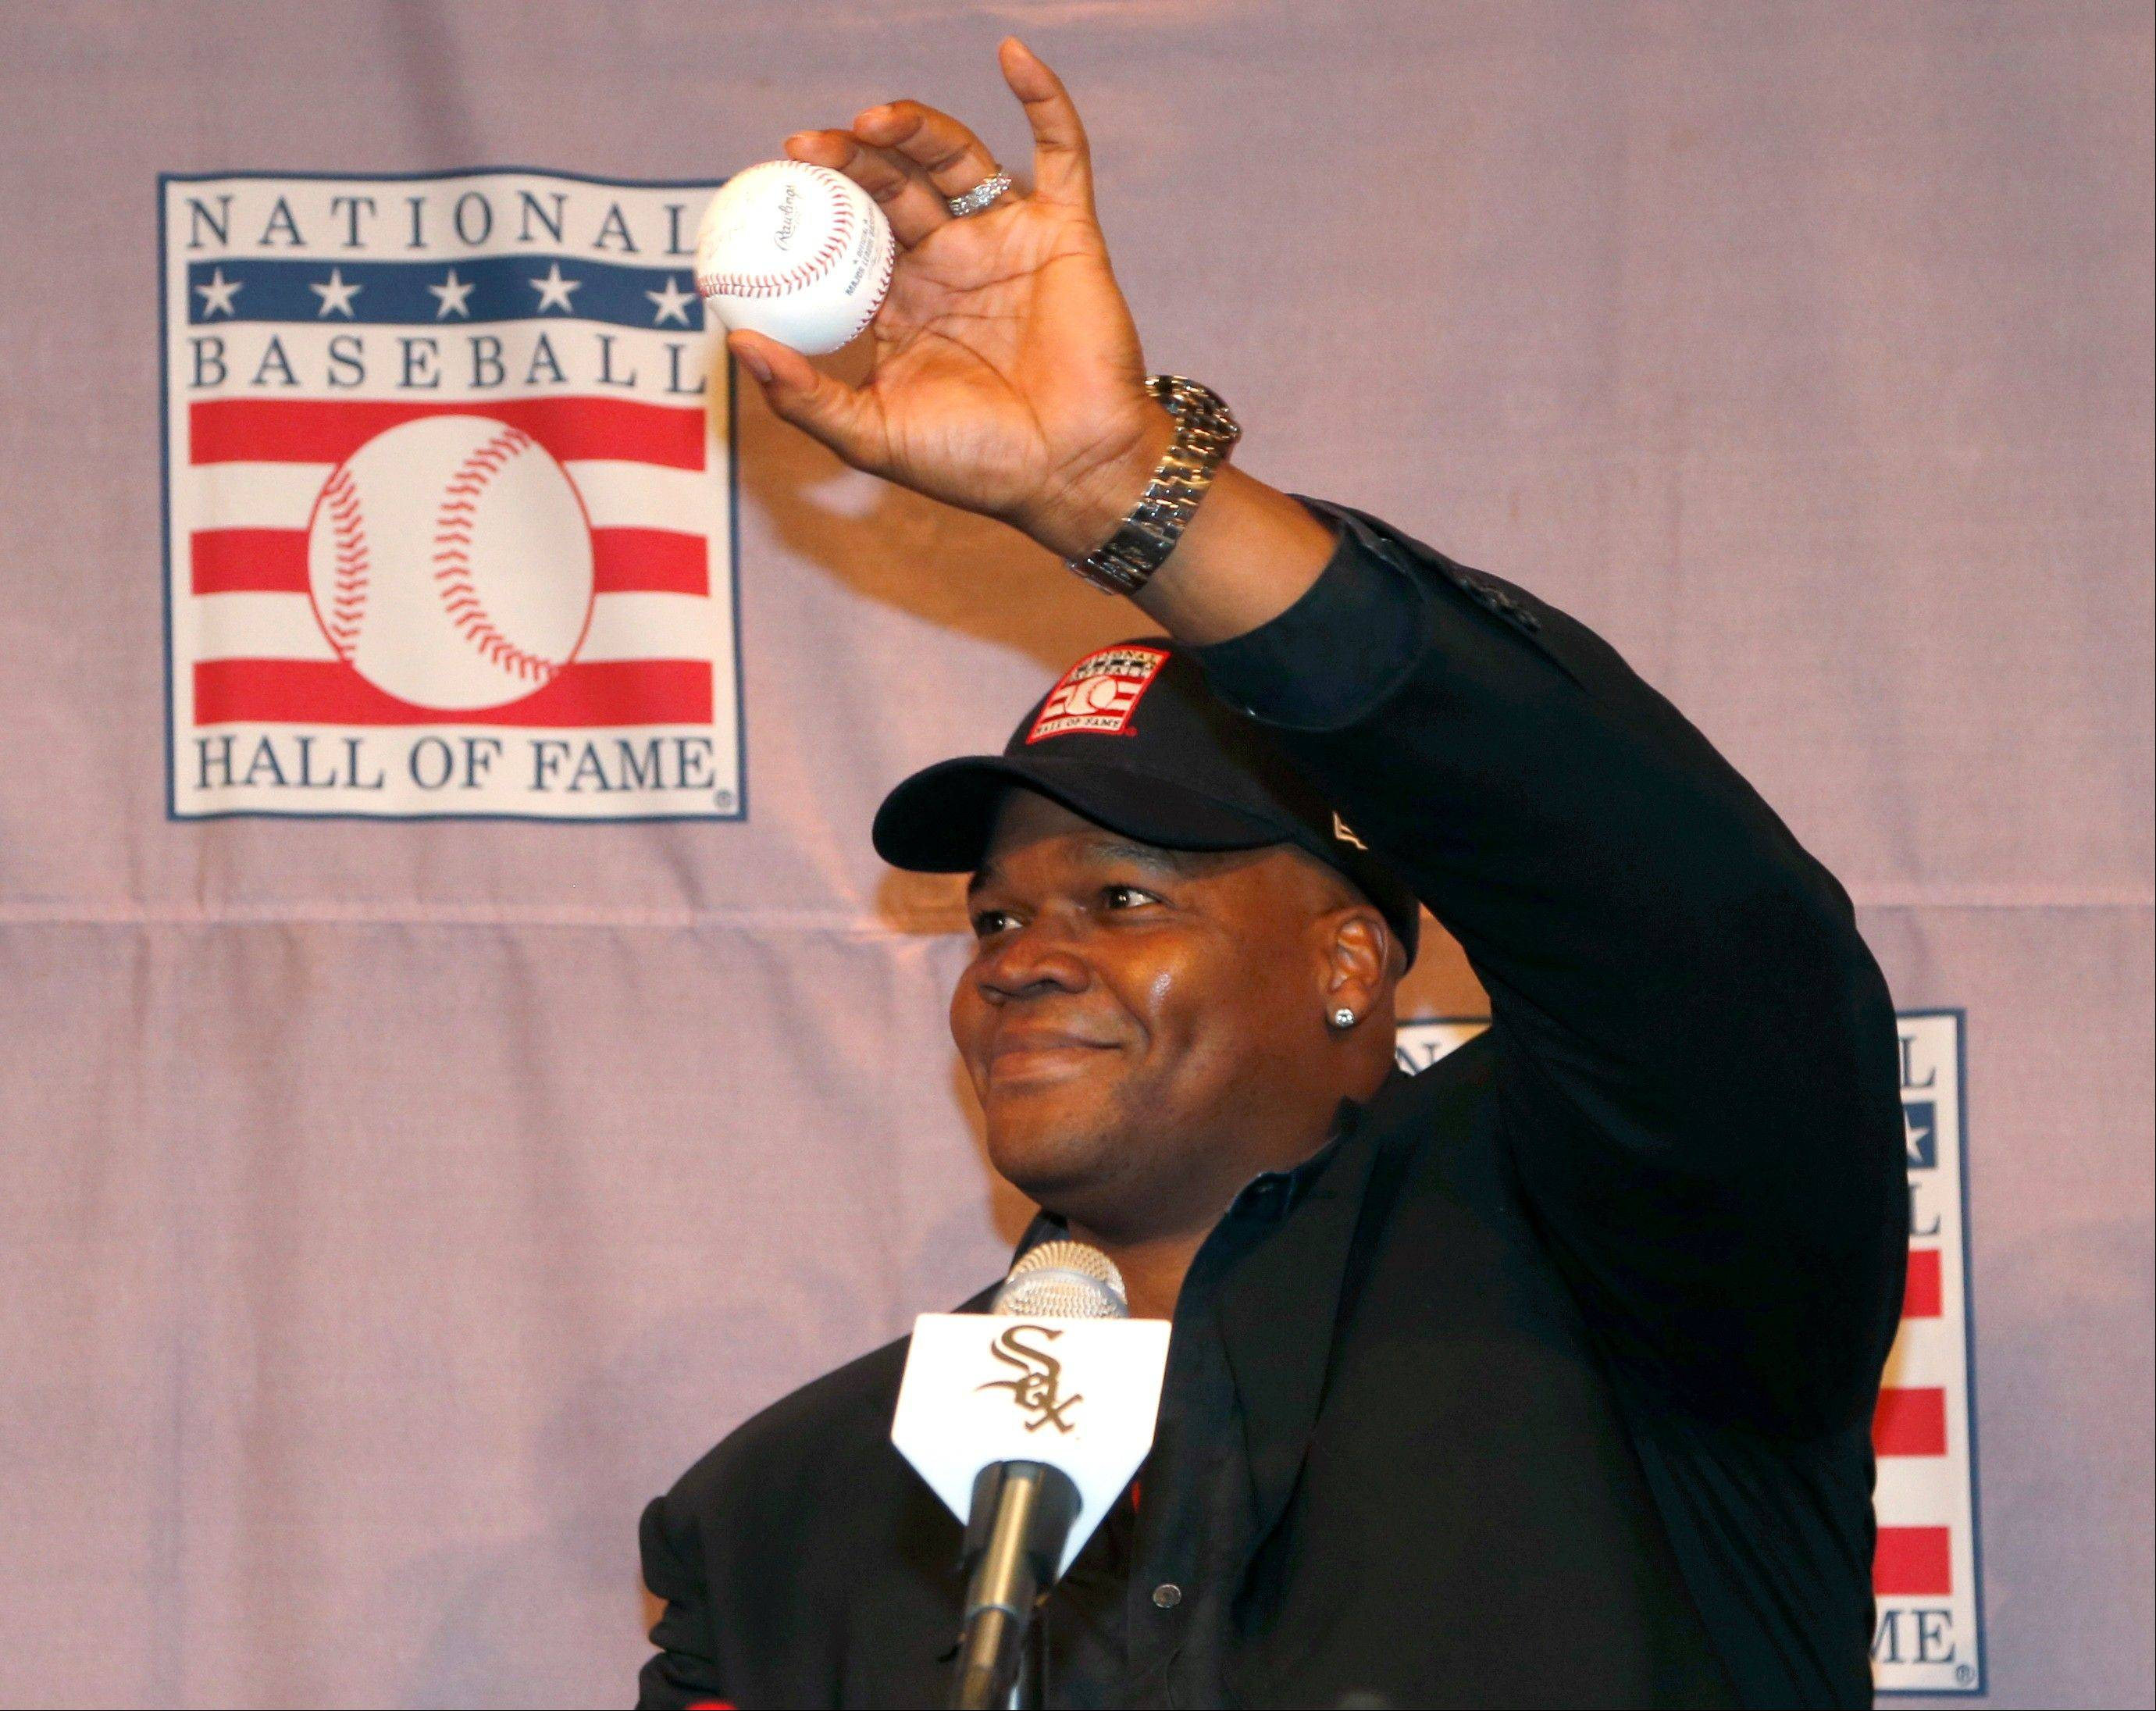 Frank Thomas holds up a baseball he signed 'Frank Thomas HOF' during a news conference about his selection into the Baseball Hall Of Fame on Wednesday at U.S. Cellular Field.